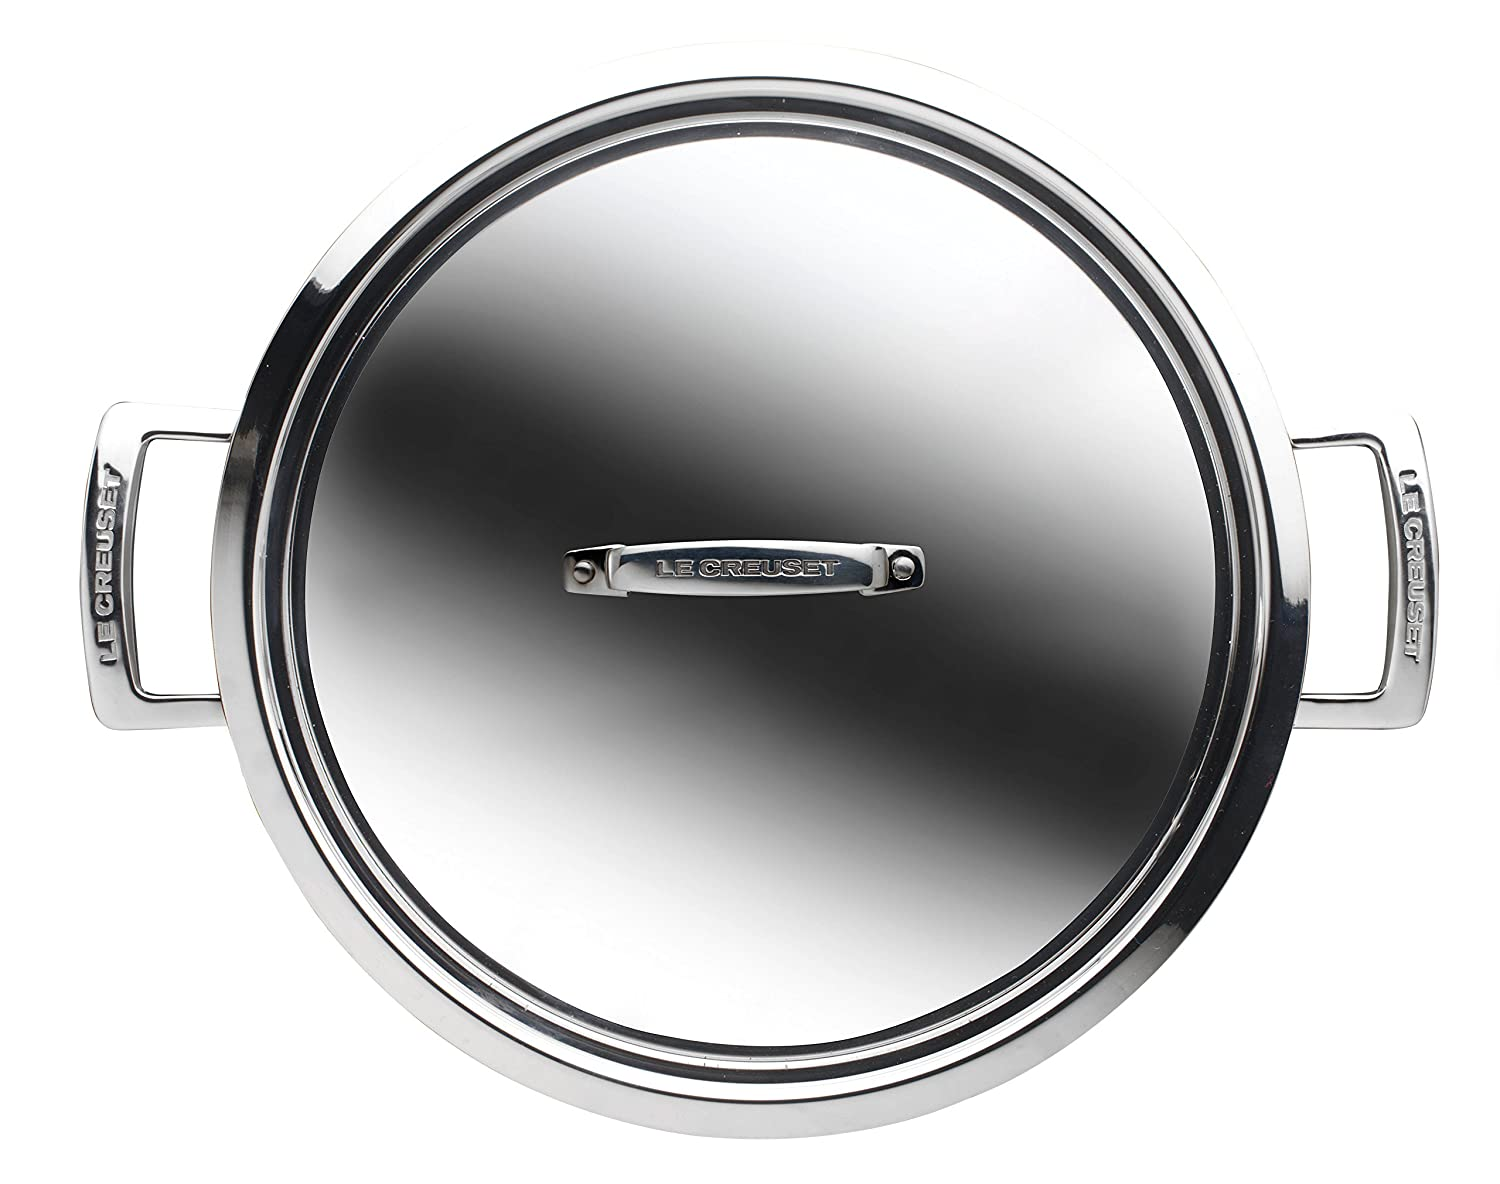 Le Creuset 3-Ply Stainless Steel Shallow Casserole 24 cm